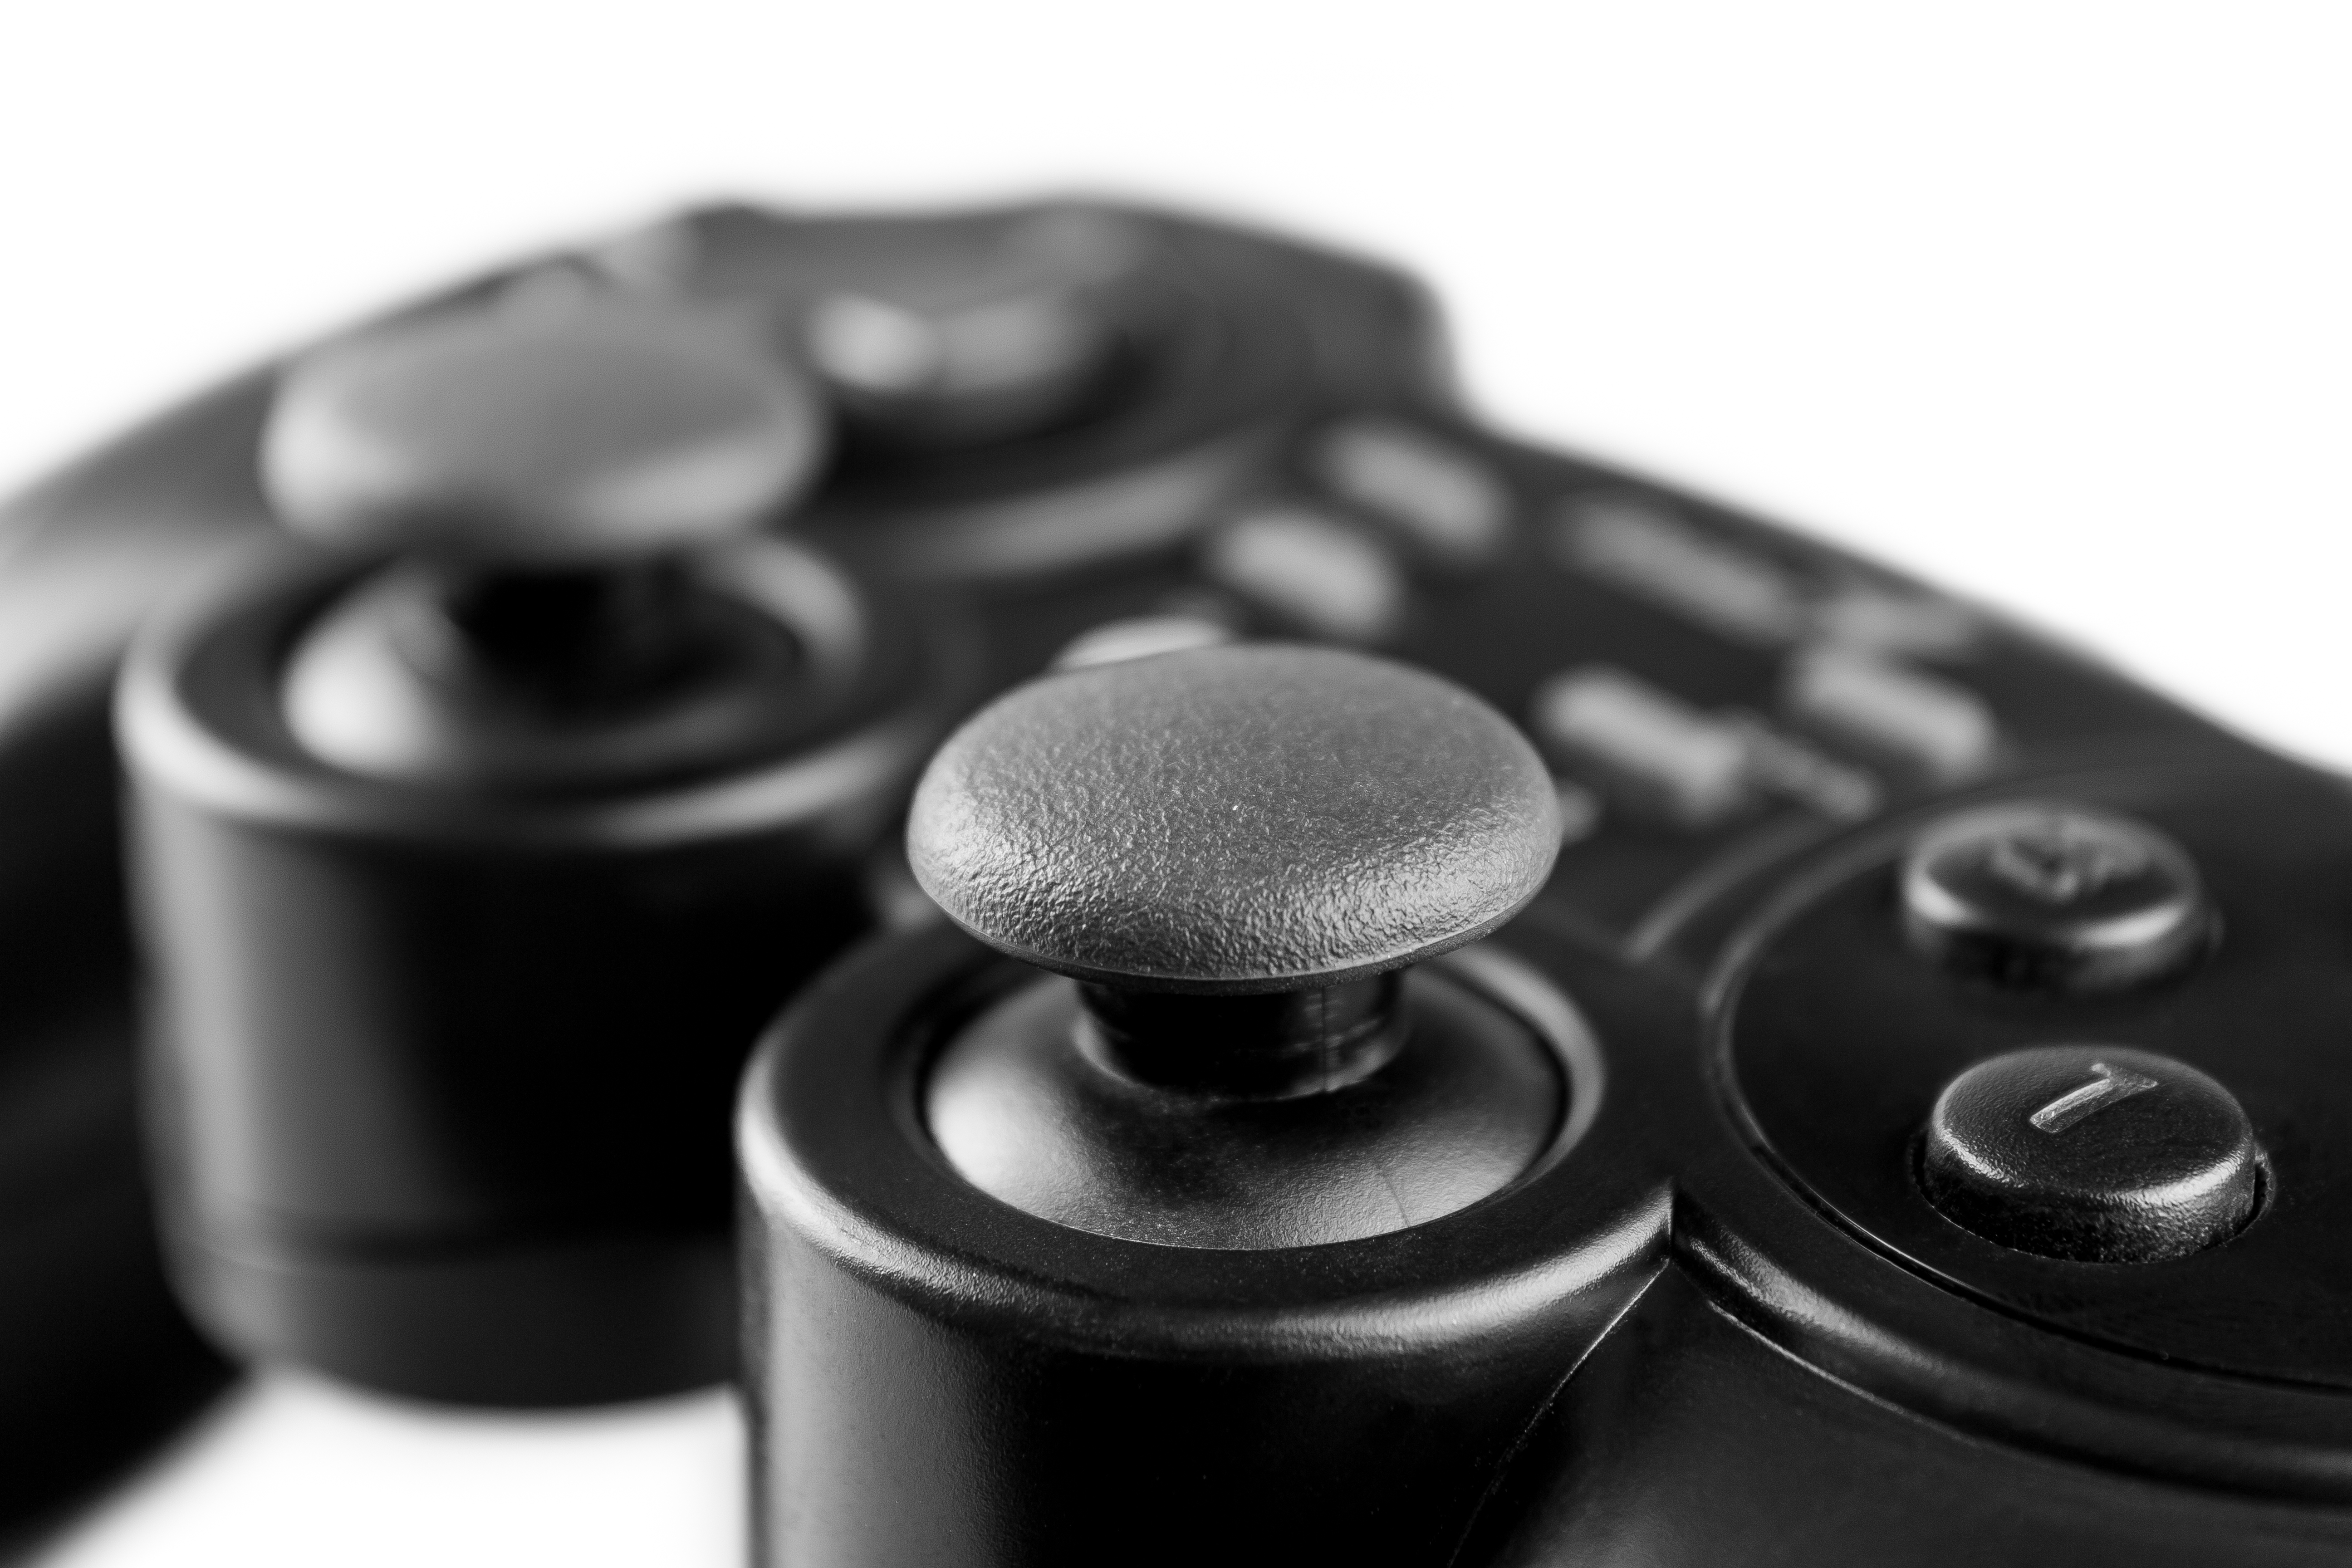 black gamepad in the foreground